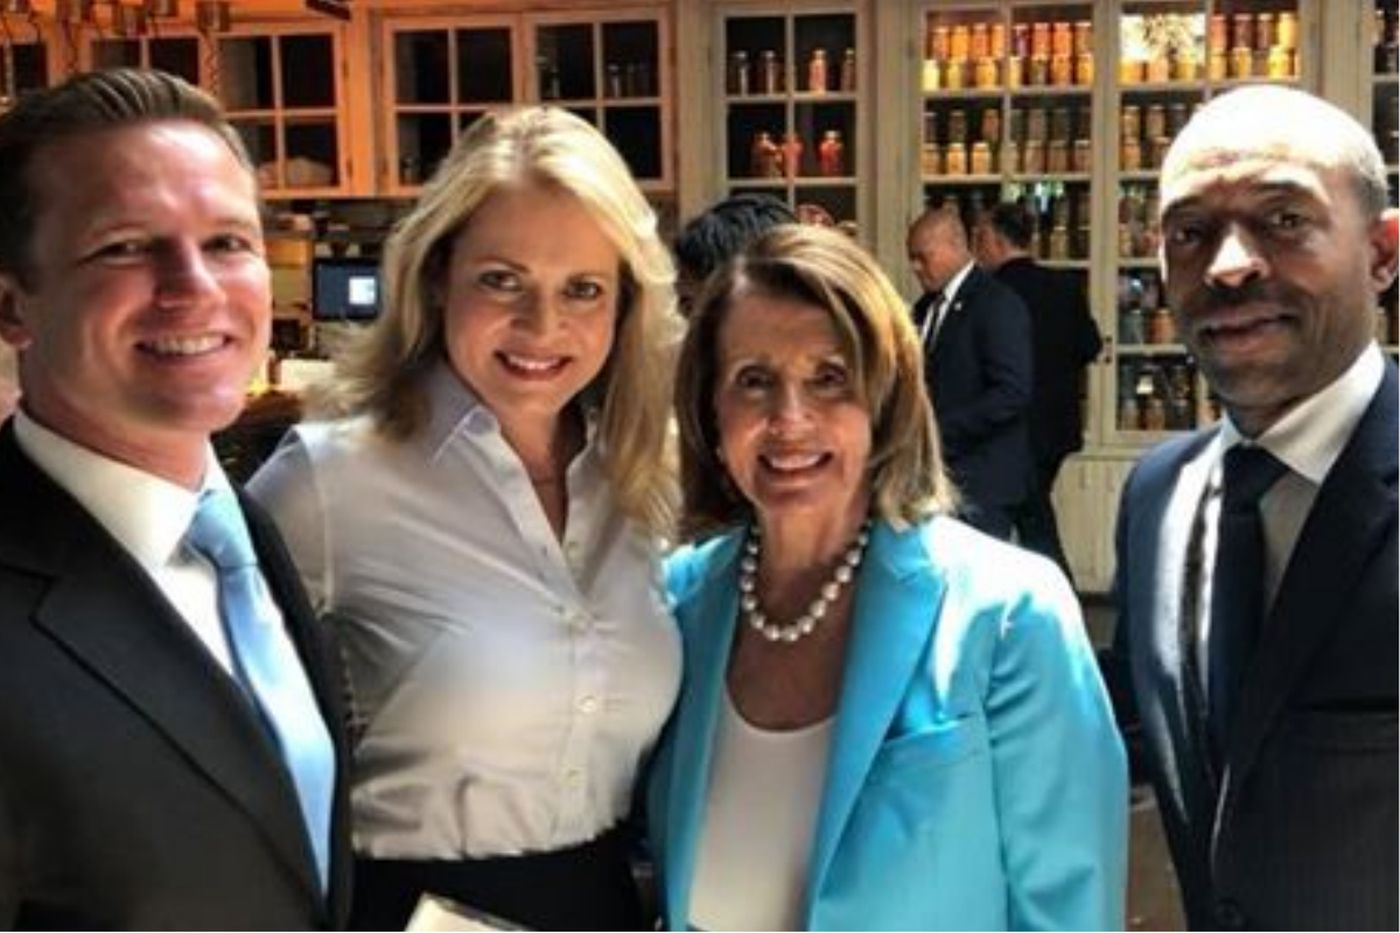 Nancy Pelosi pals around with convicted tax dodger at Dems fundraiser in Philly | Clout